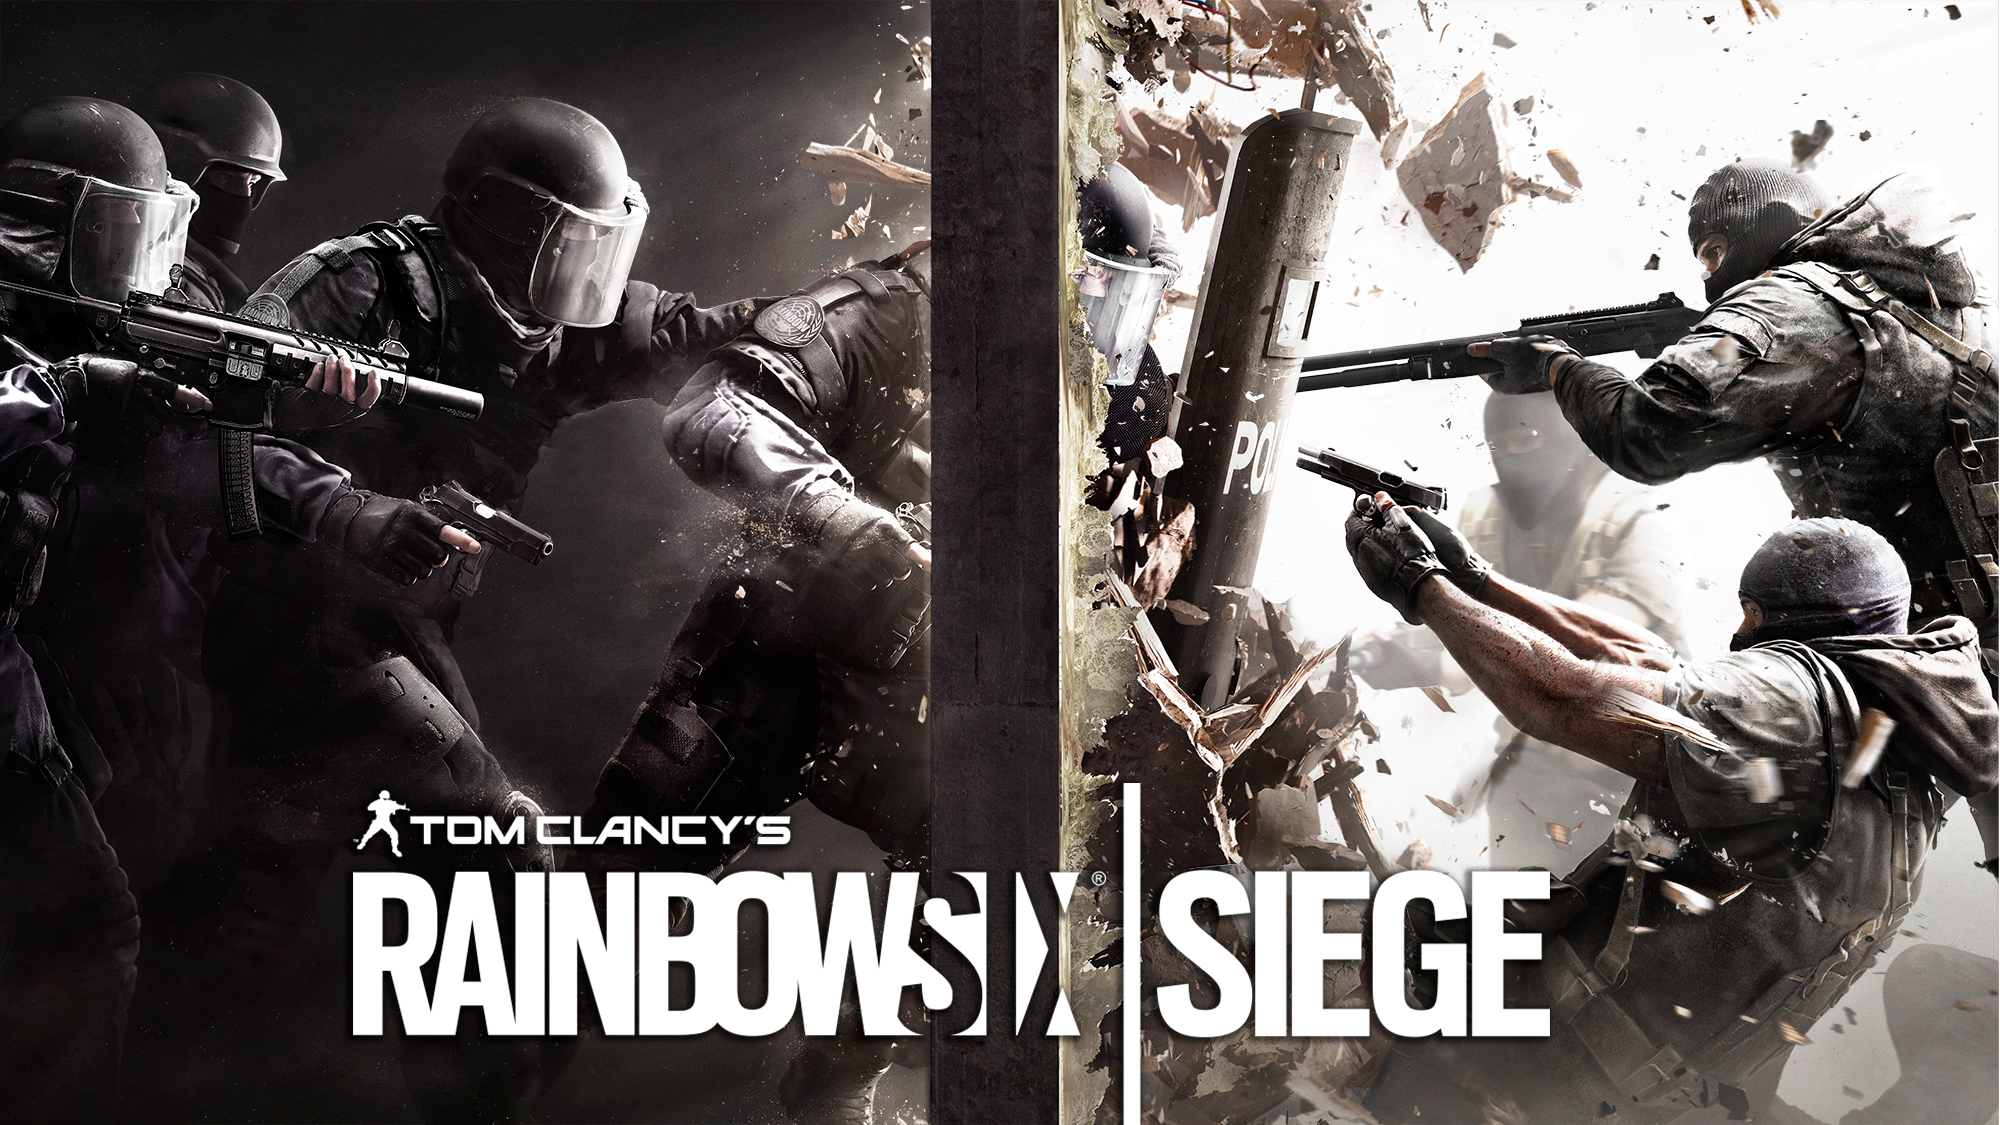 Tom Clancy's Rainbow Six Siege [Uplay account]